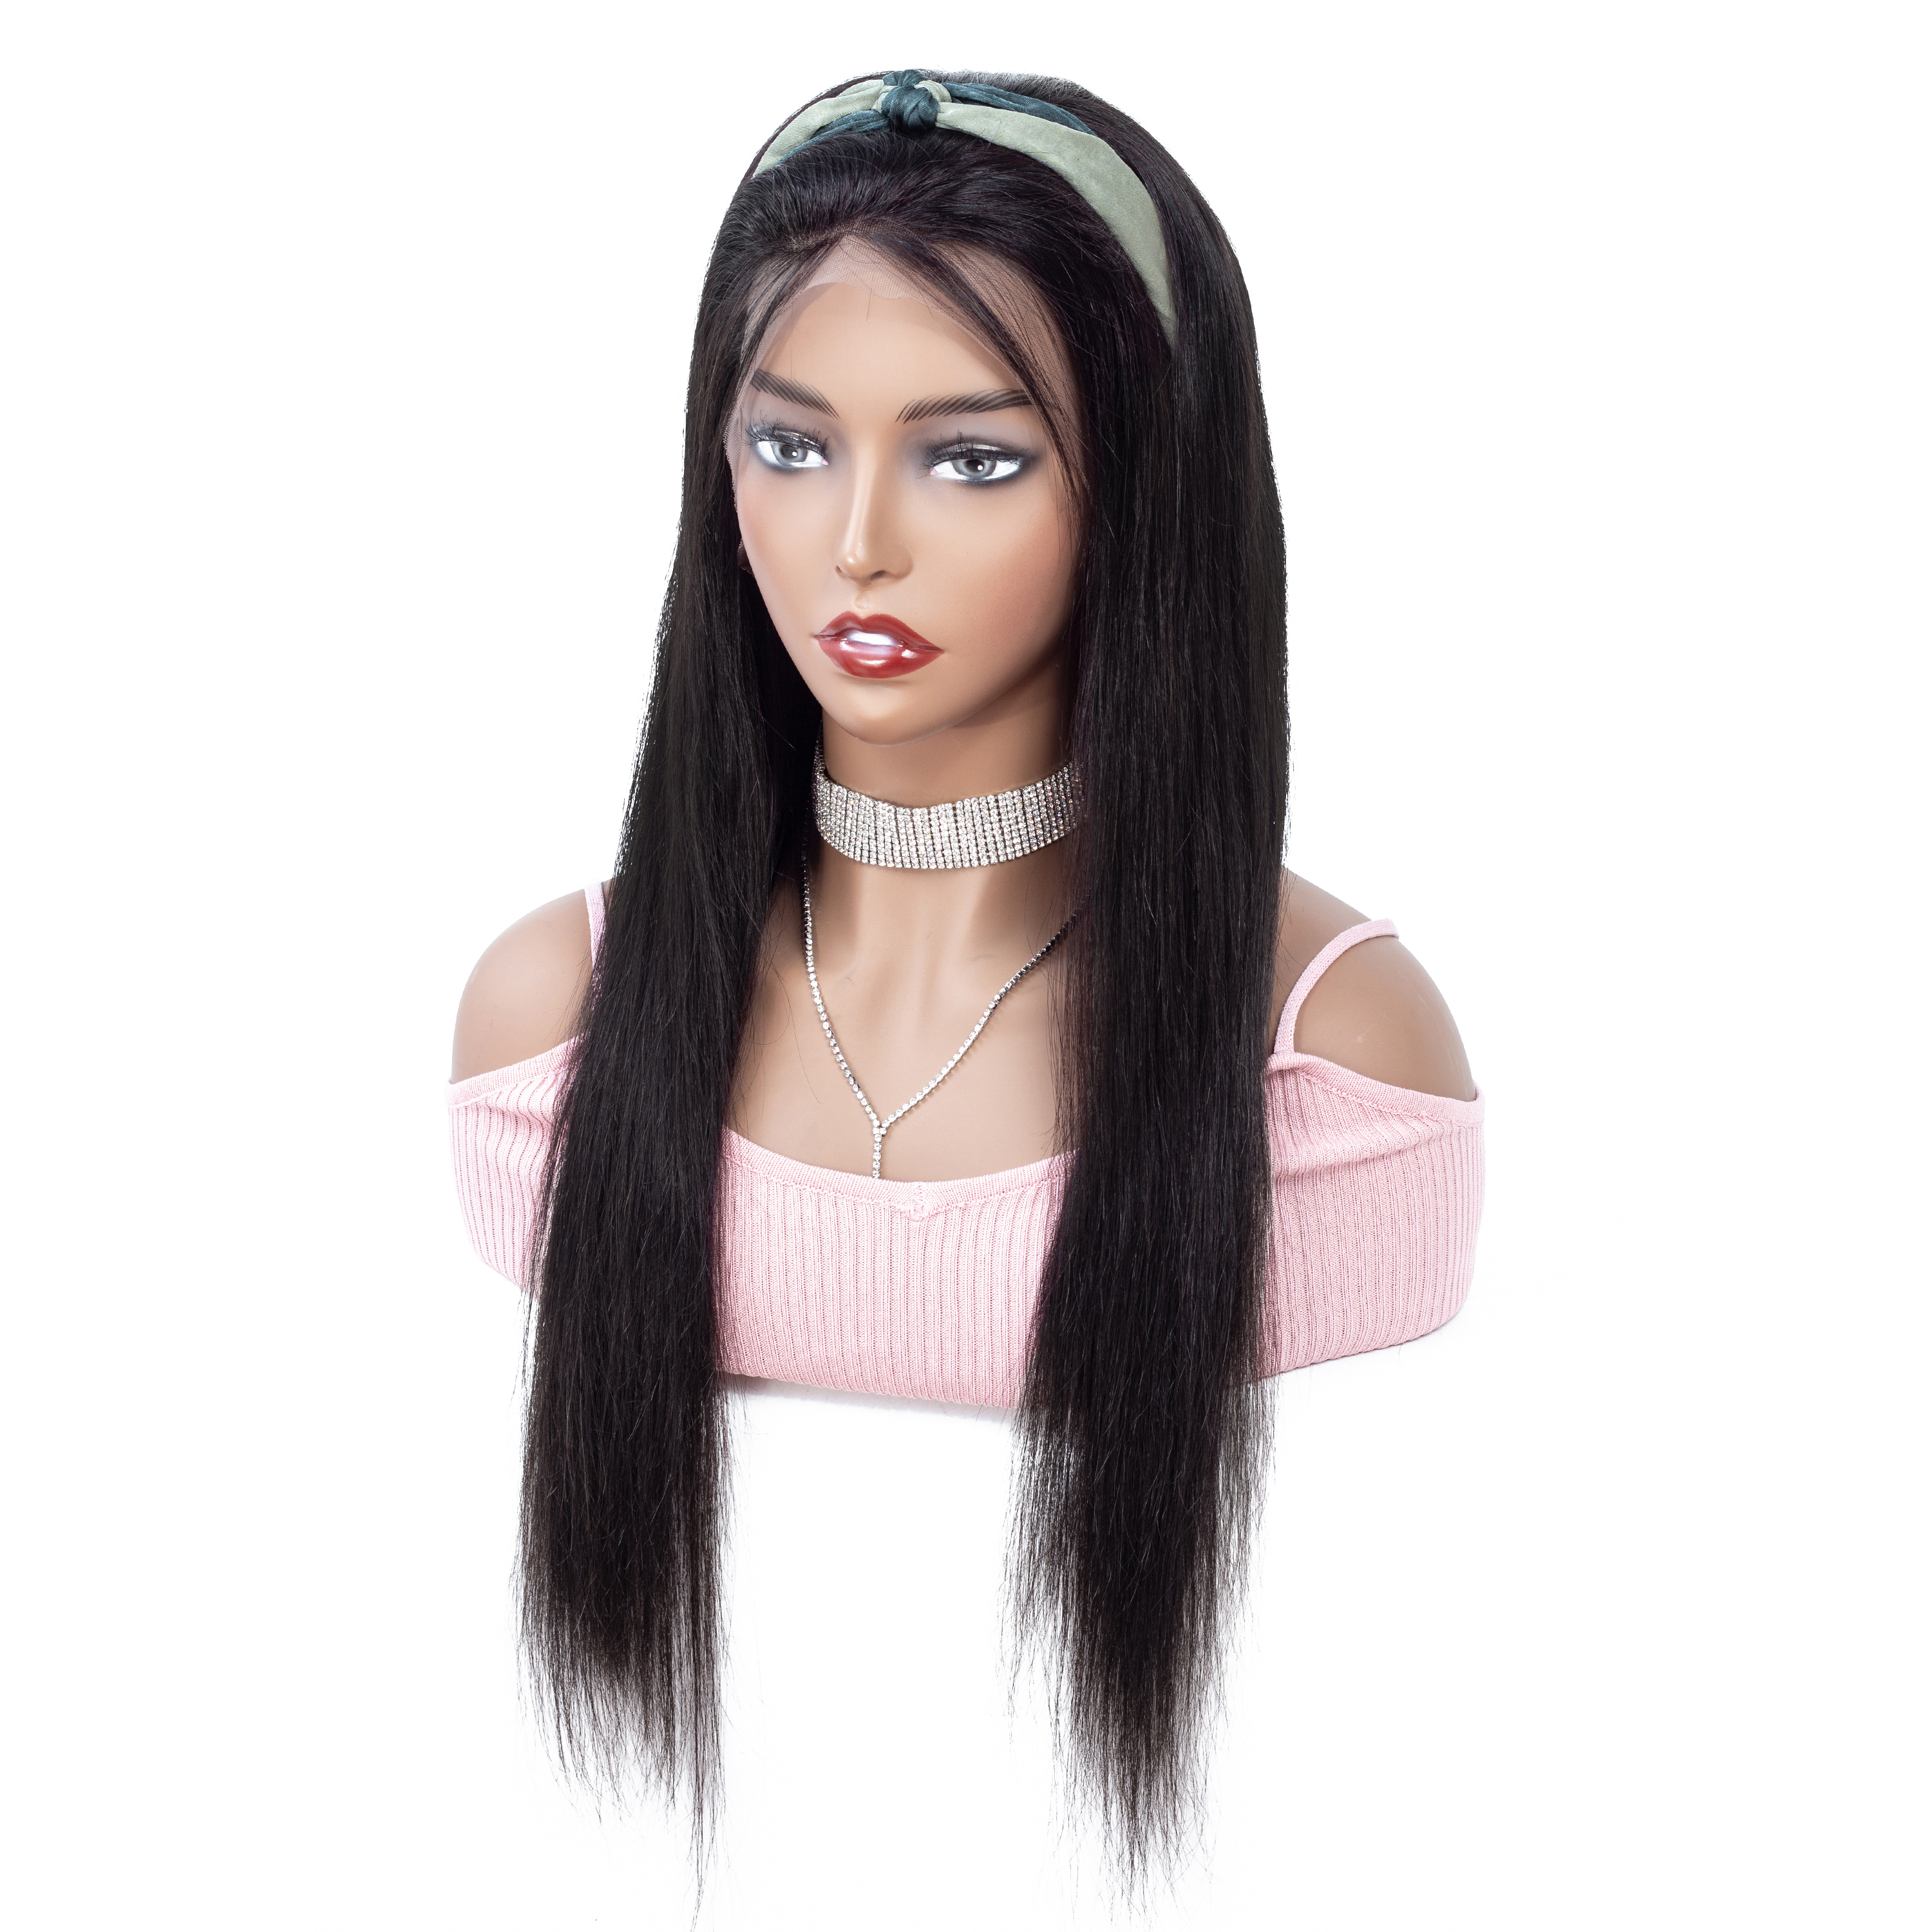 NAFUN 13x4 Lace Front Human Hair Wigs Peruvian Straight Lace Front Wig Natural Color Remy 10- 30 Inch Lace Wig Human Hair